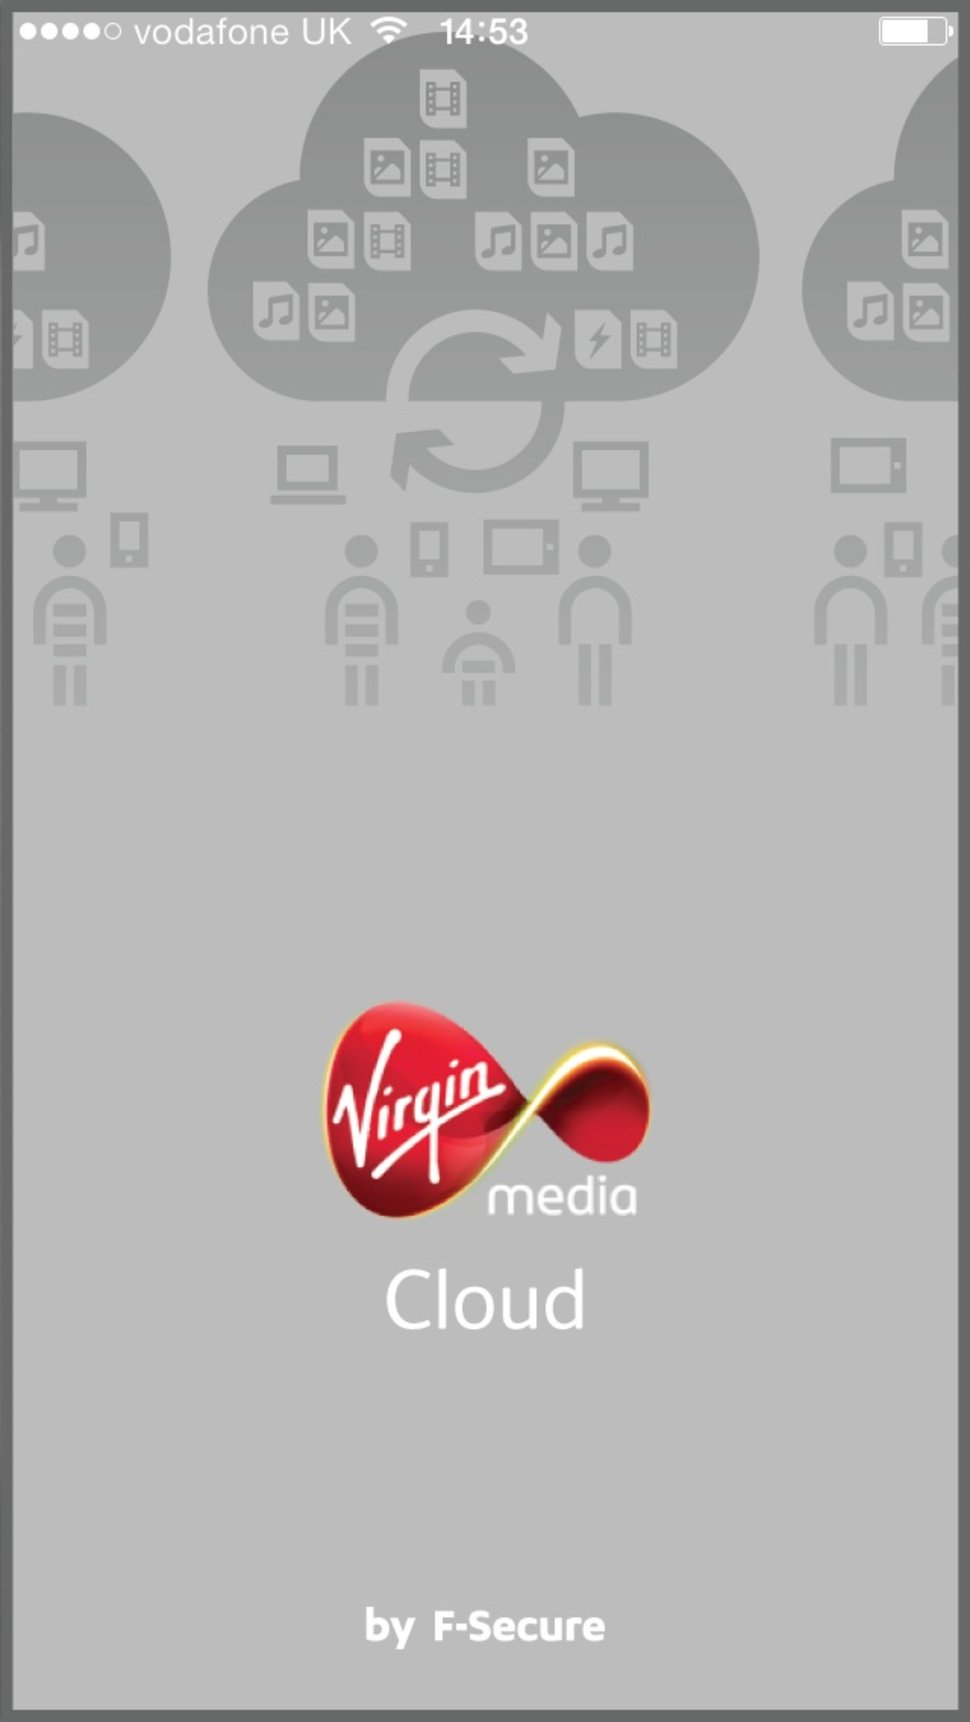 Virgin Media Gives Customers 5gb Of Free Cloud Storage Launches Packages For Additional Space Image 2